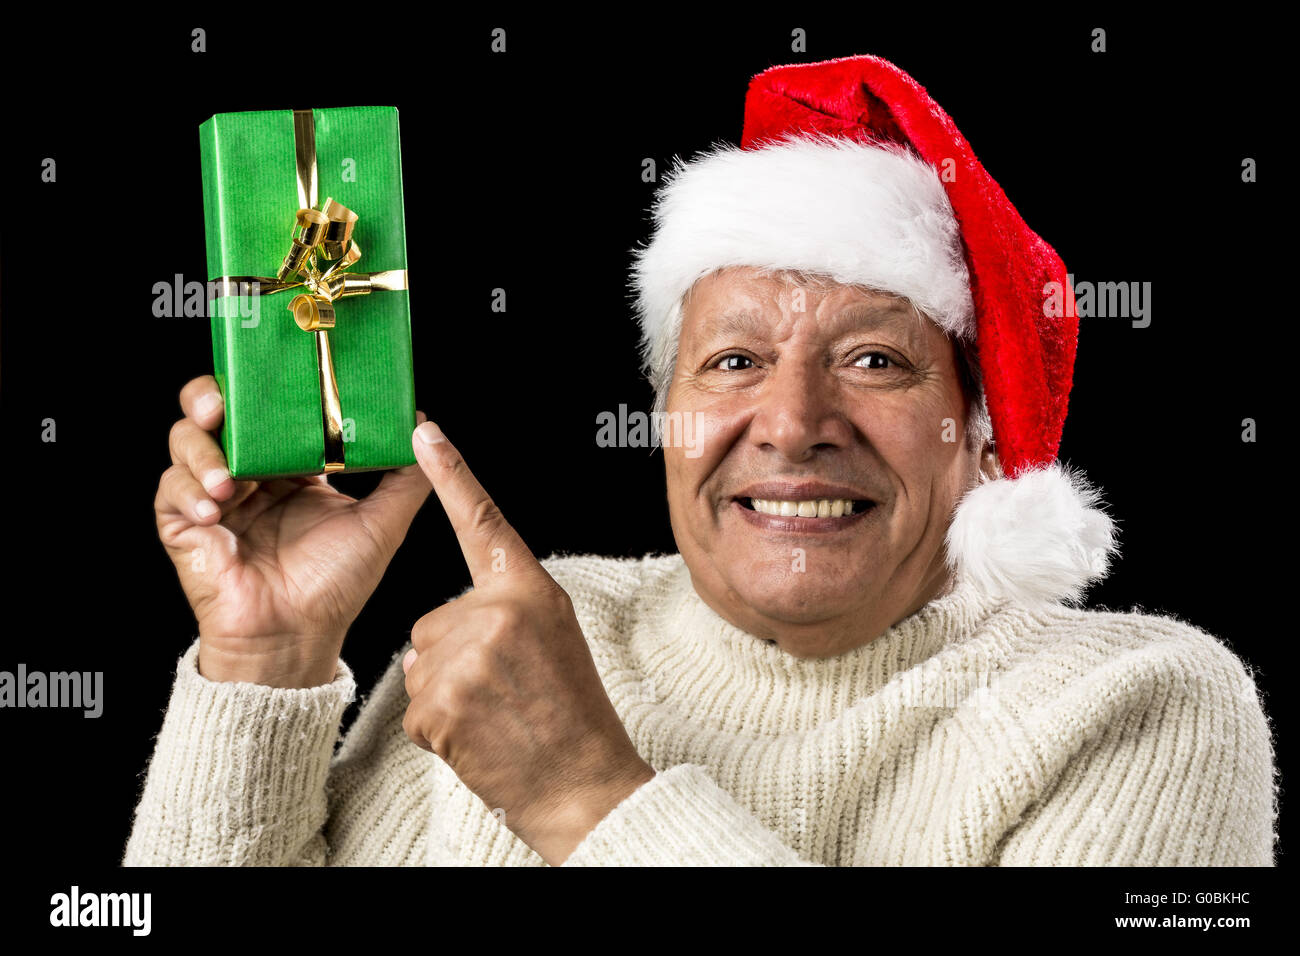 Gleeful Aged Man Pointing At Raised Green Present - Stock Image